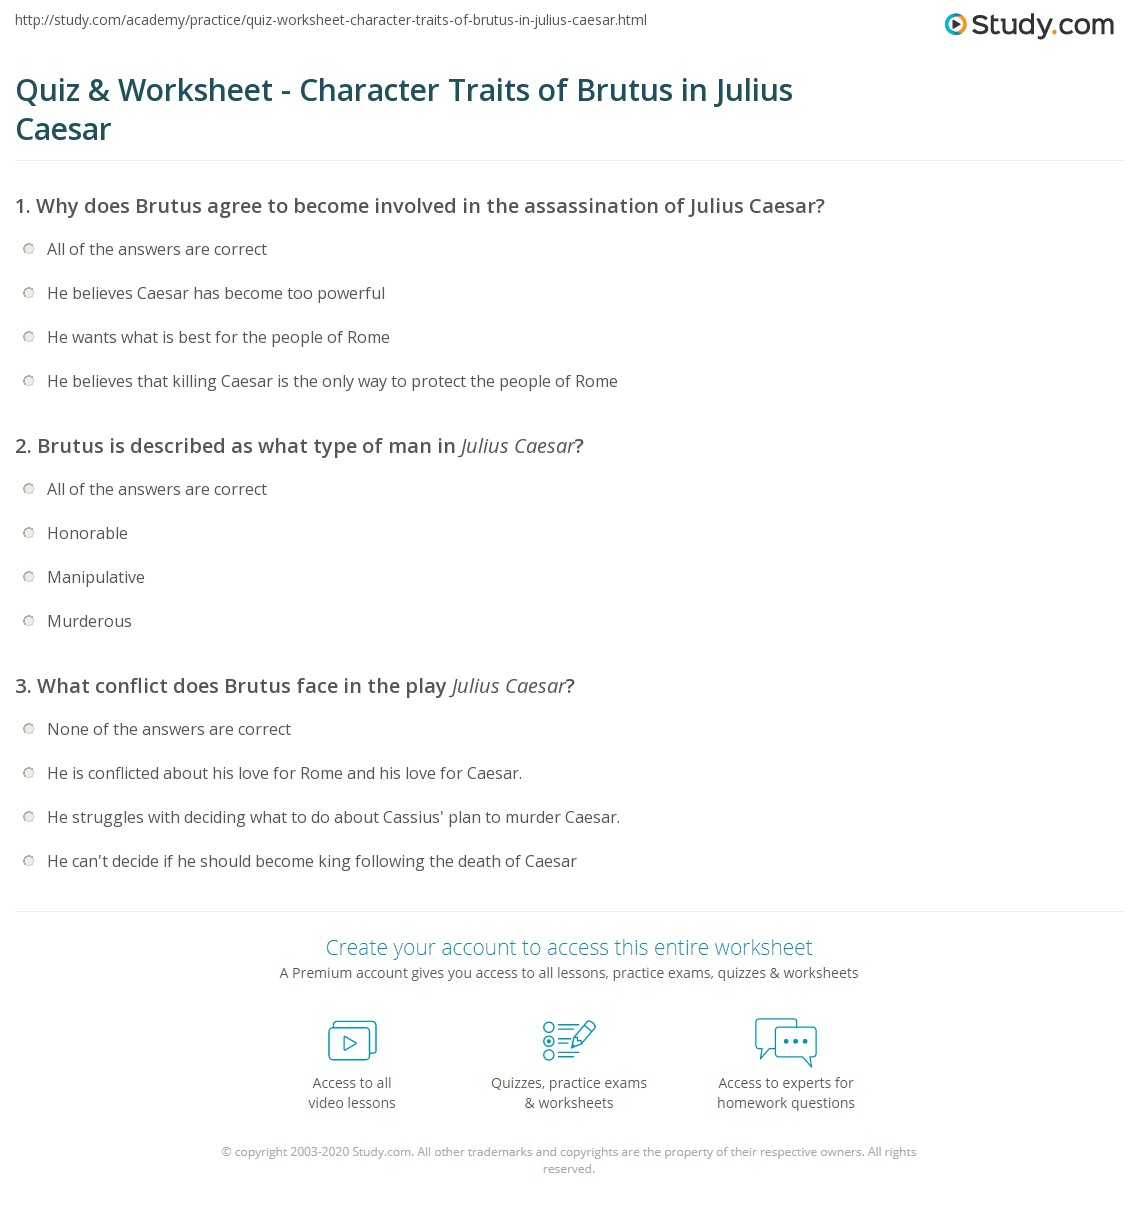 quiz worksheet character traits of brutus in julius caesar. Black Bedroom Furniture Sets. Home Design Ideas